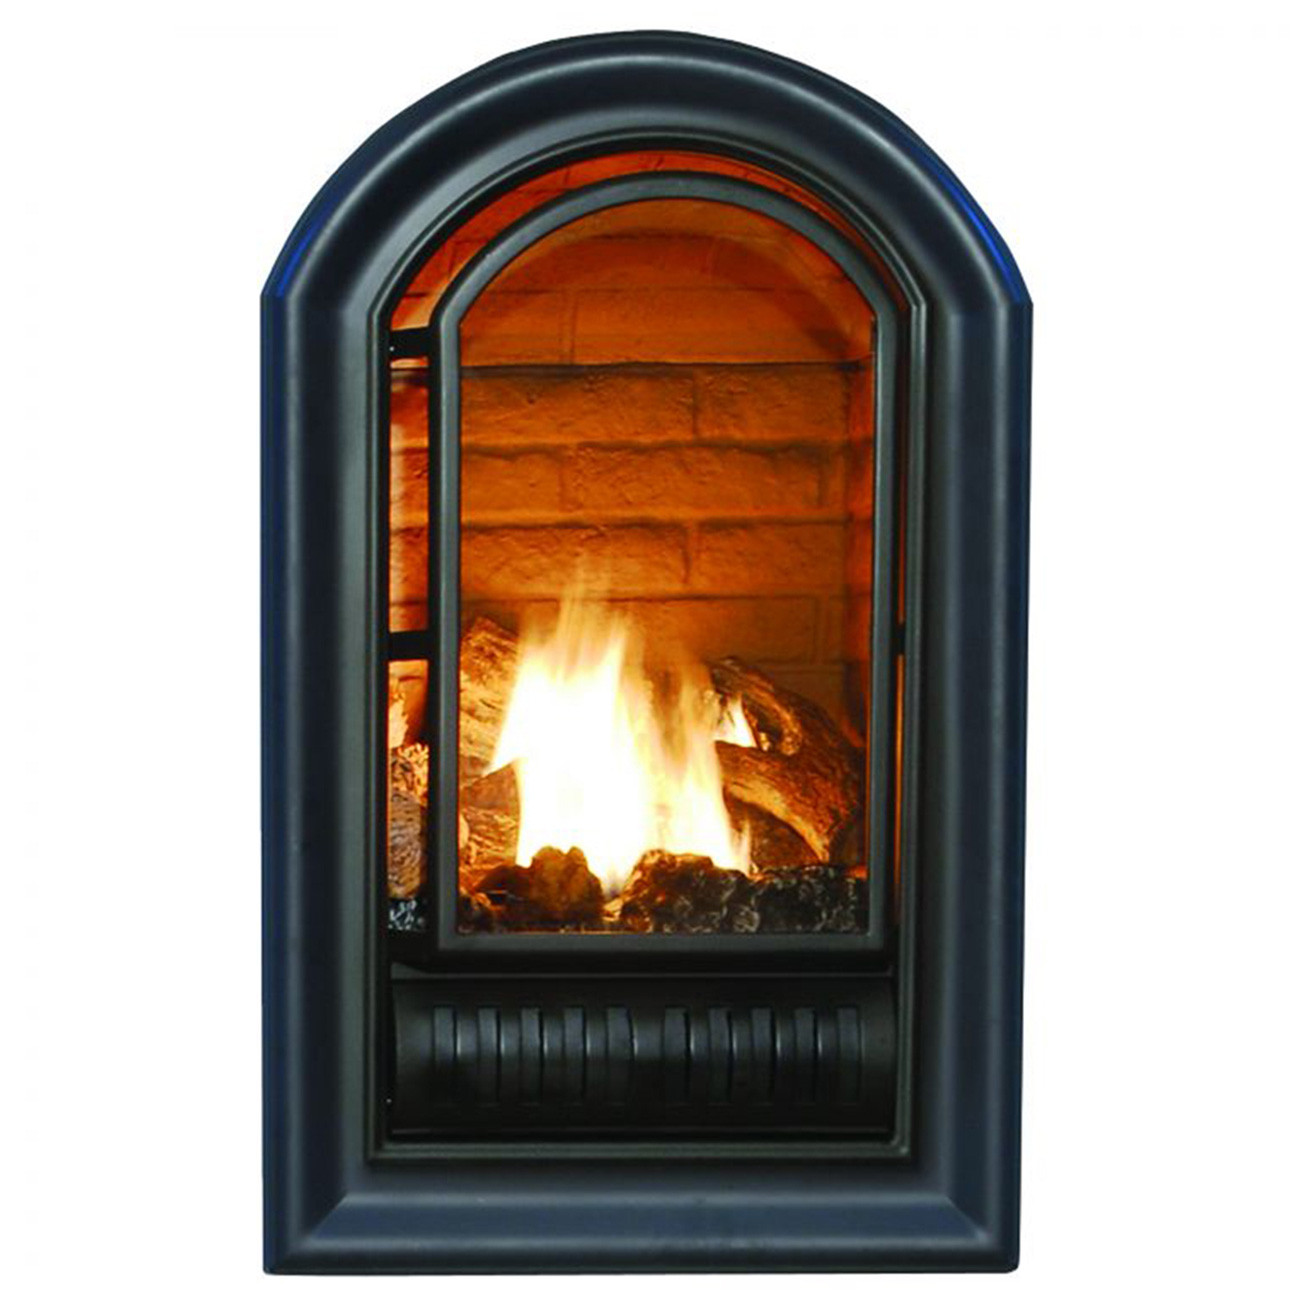 Best ideas about Propane Fireplace Inserts . Save or Pin Ventless Liquid Propane Fireplace Insert 20 000 BTU Now.